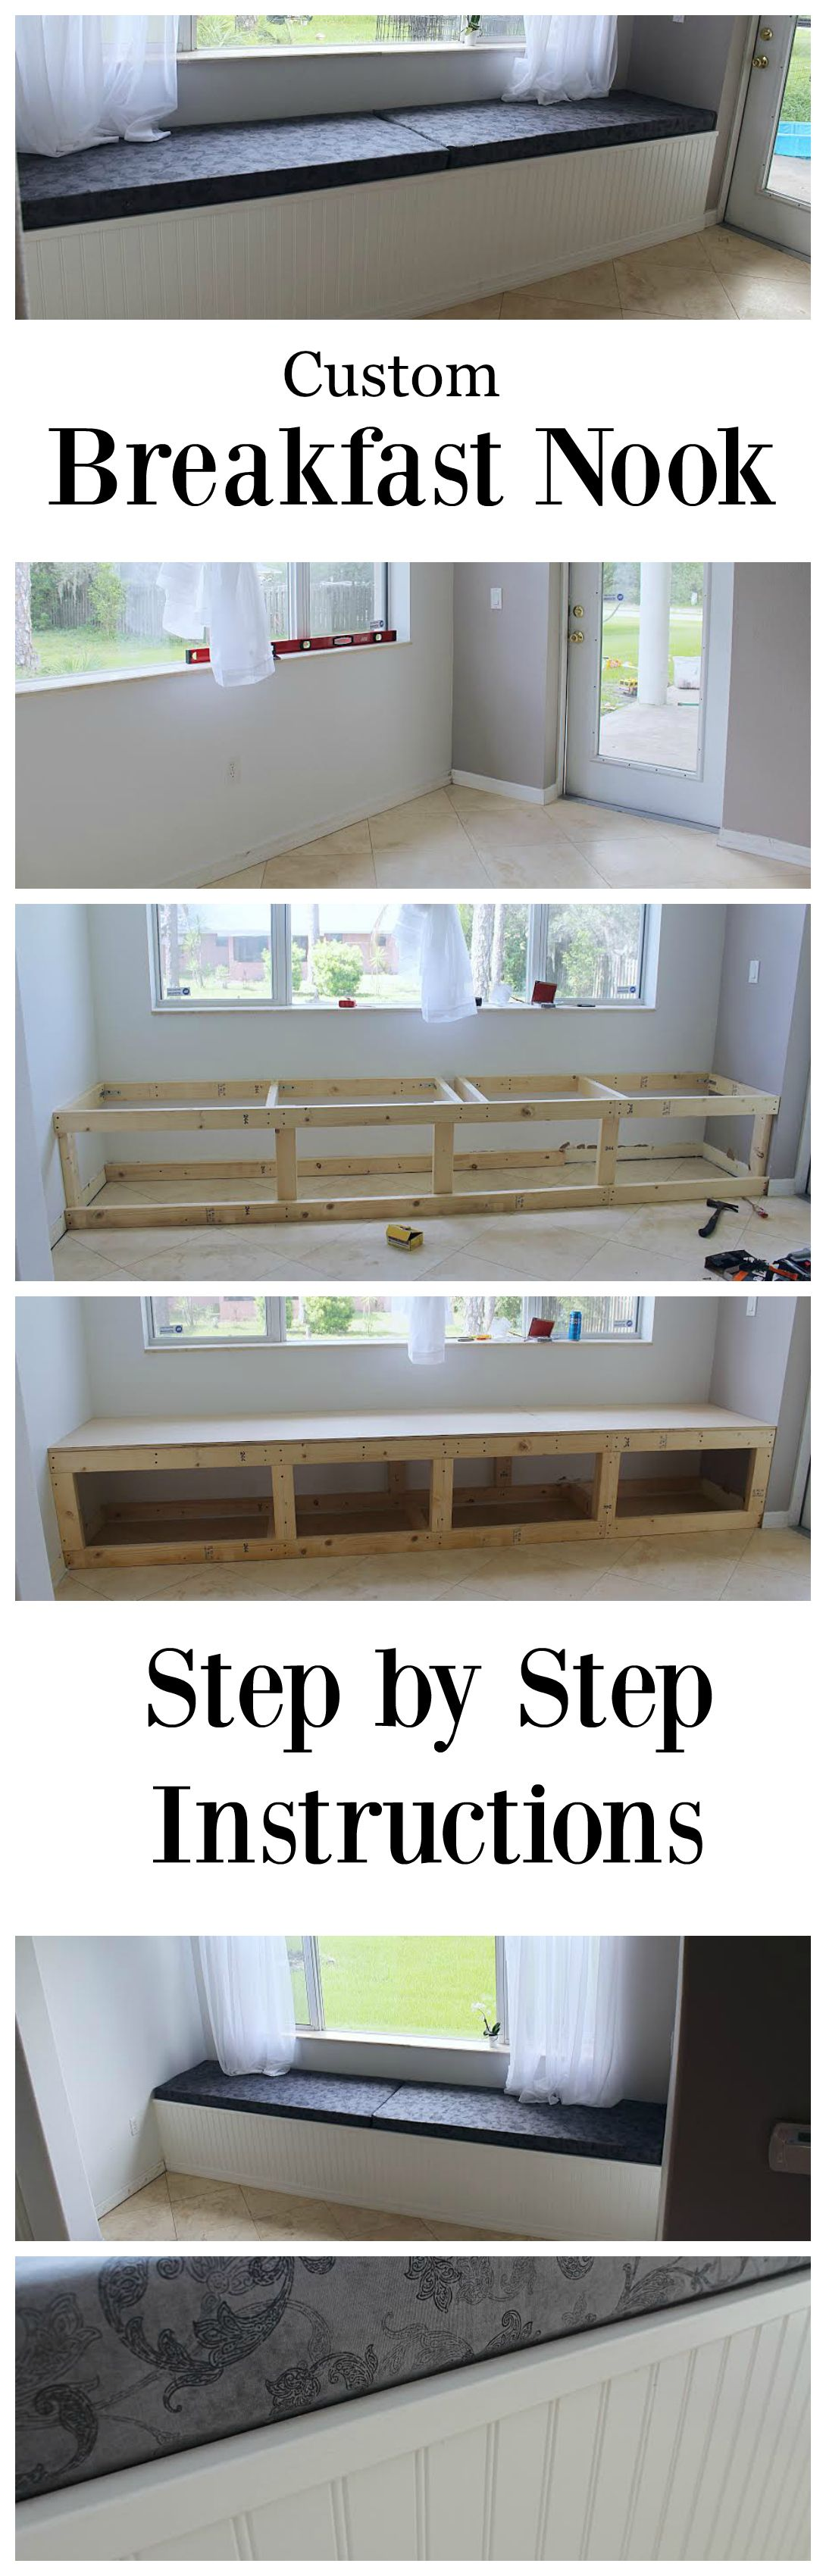 How To Build A Custom Breakfast Nook For Your Home Step By Step Photos Diy Kitchen Table Breakfast Nook Furniture Diy Breakfast Nook